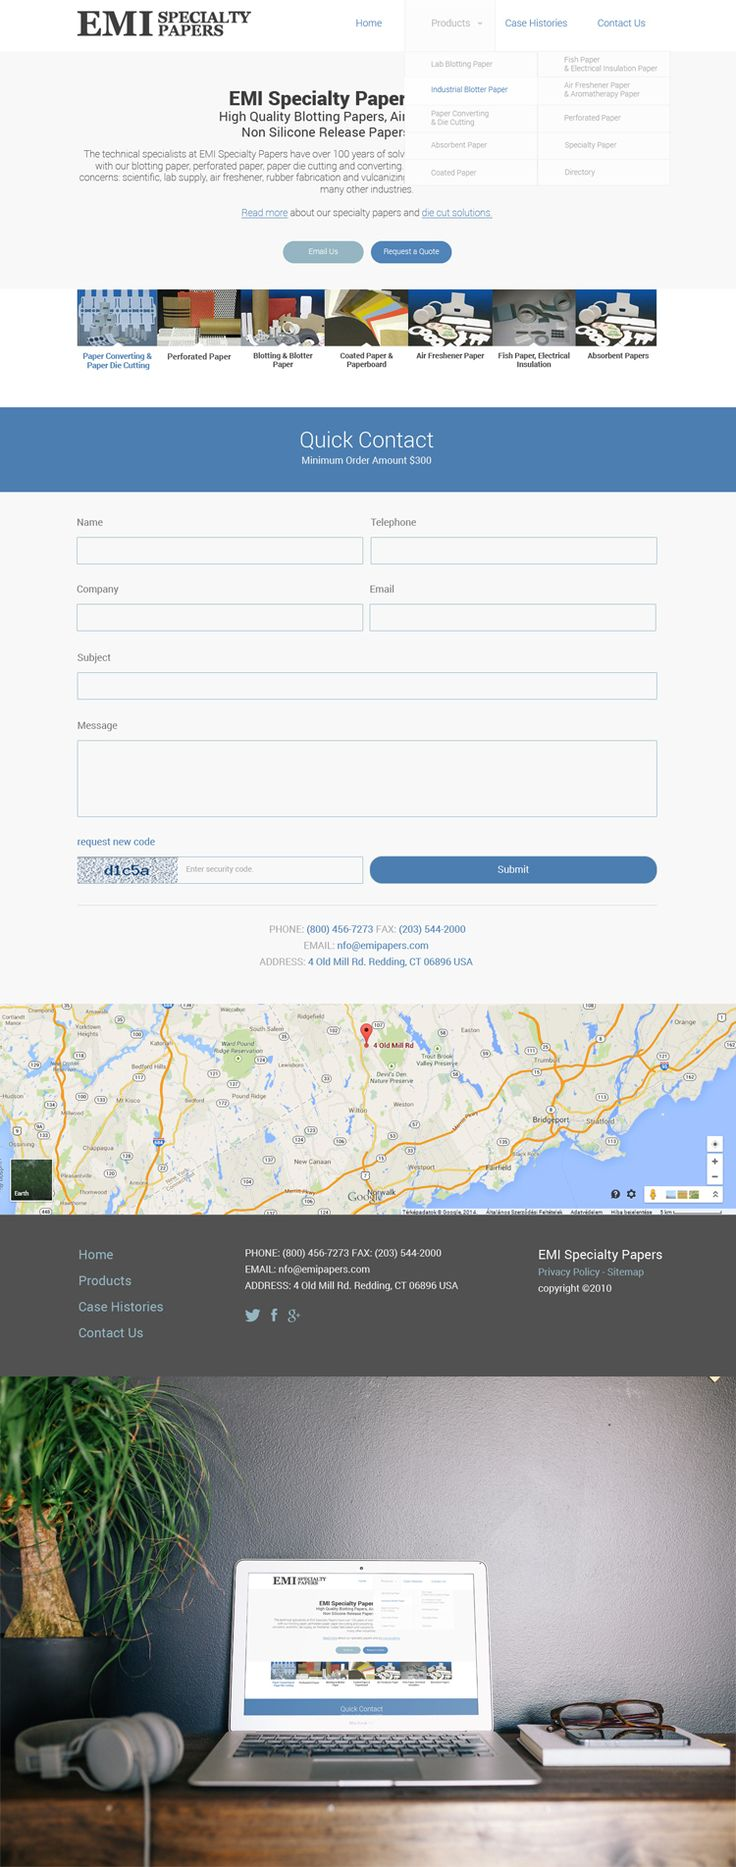 EMI-Specialty Papers website home page redesign